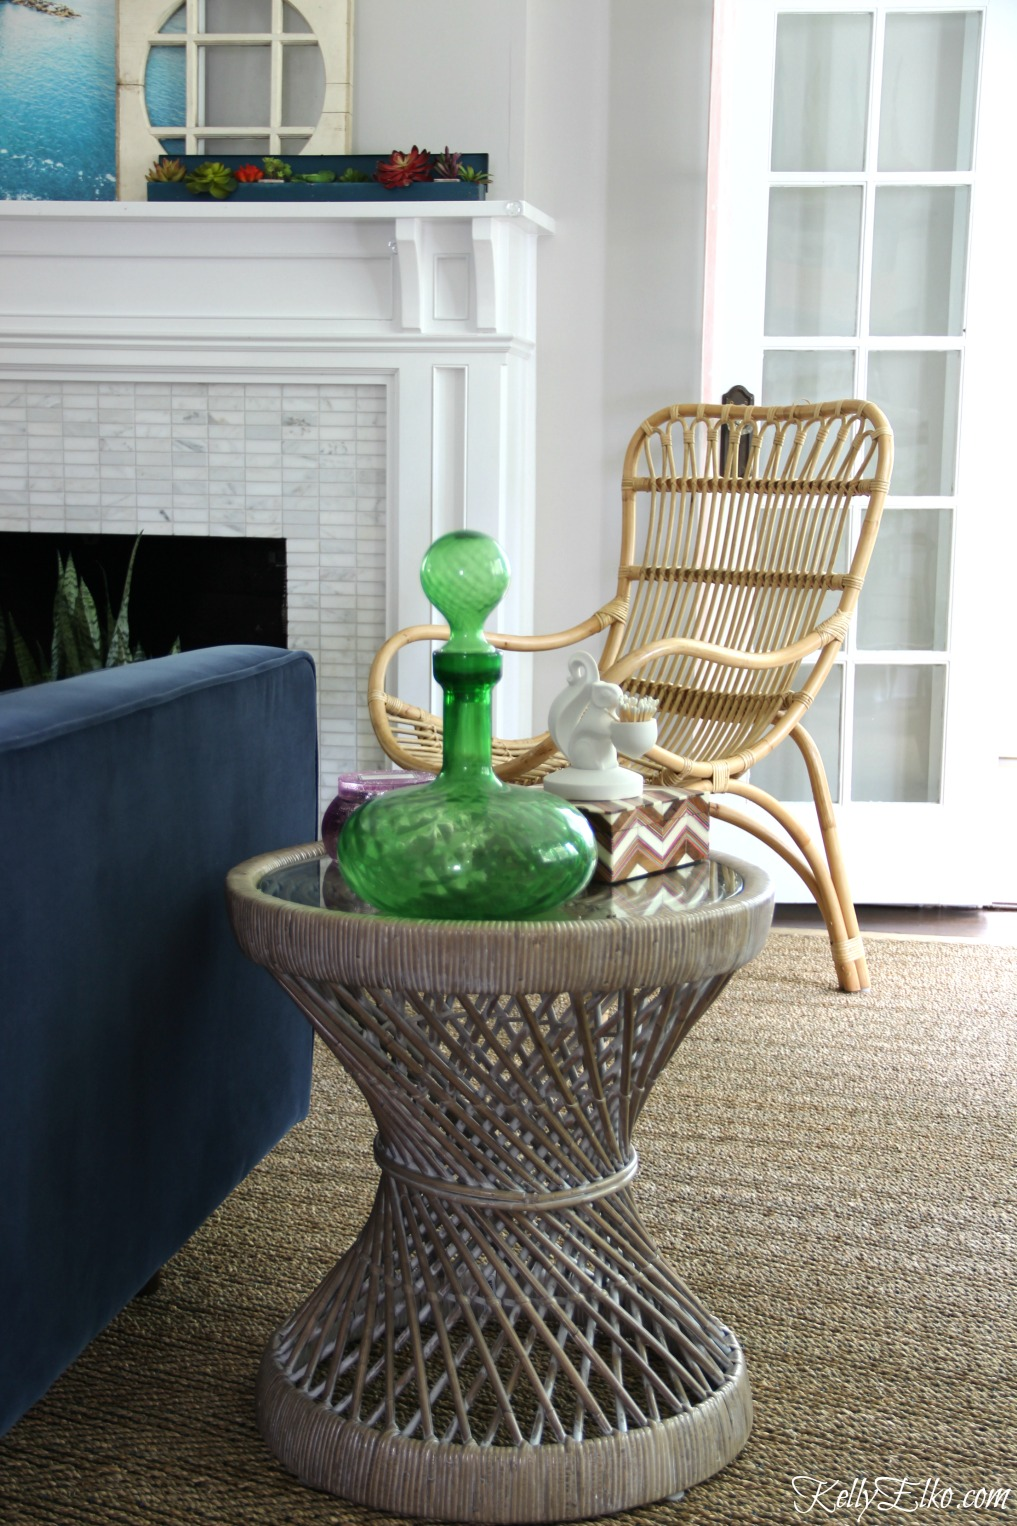 A rattan table and chair and seagrass rug add so much texture to this living room kellyelko.com